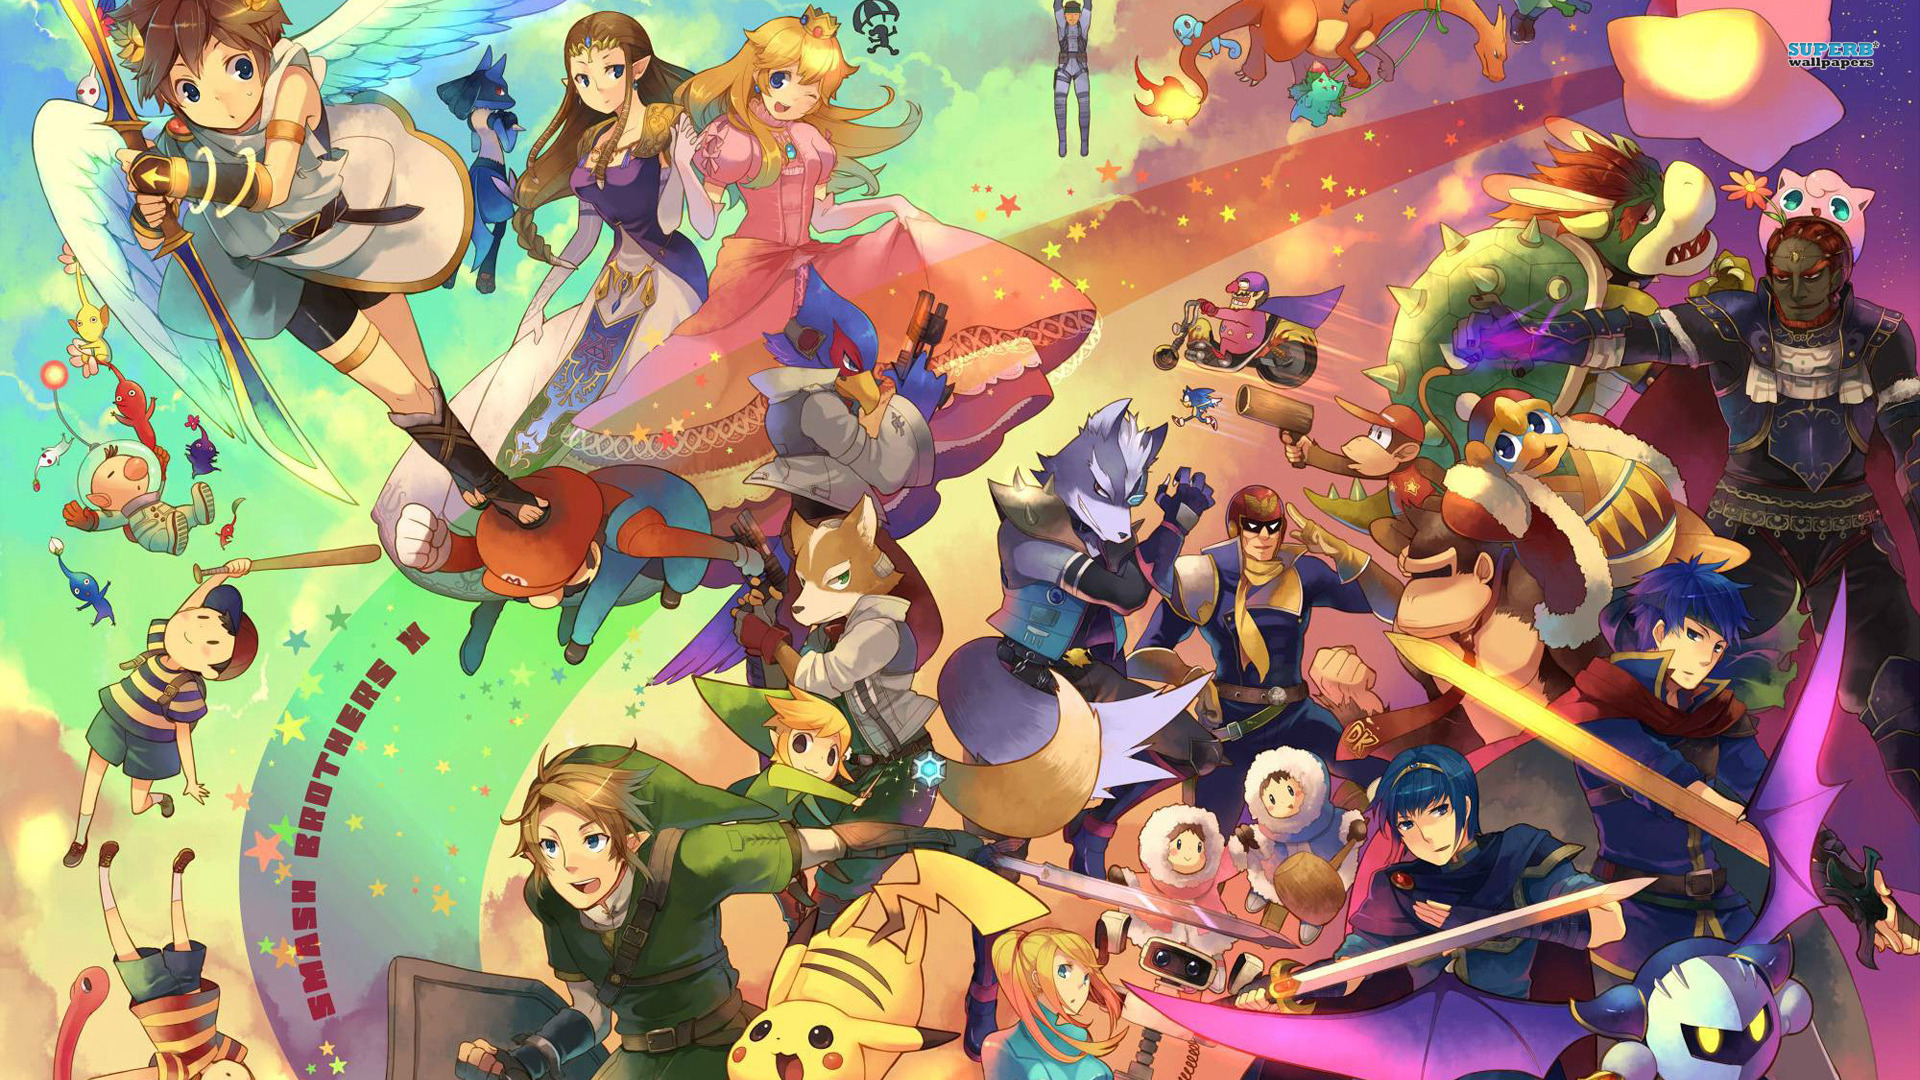 High Quality Smash Wallpapers | Full HD Pictures